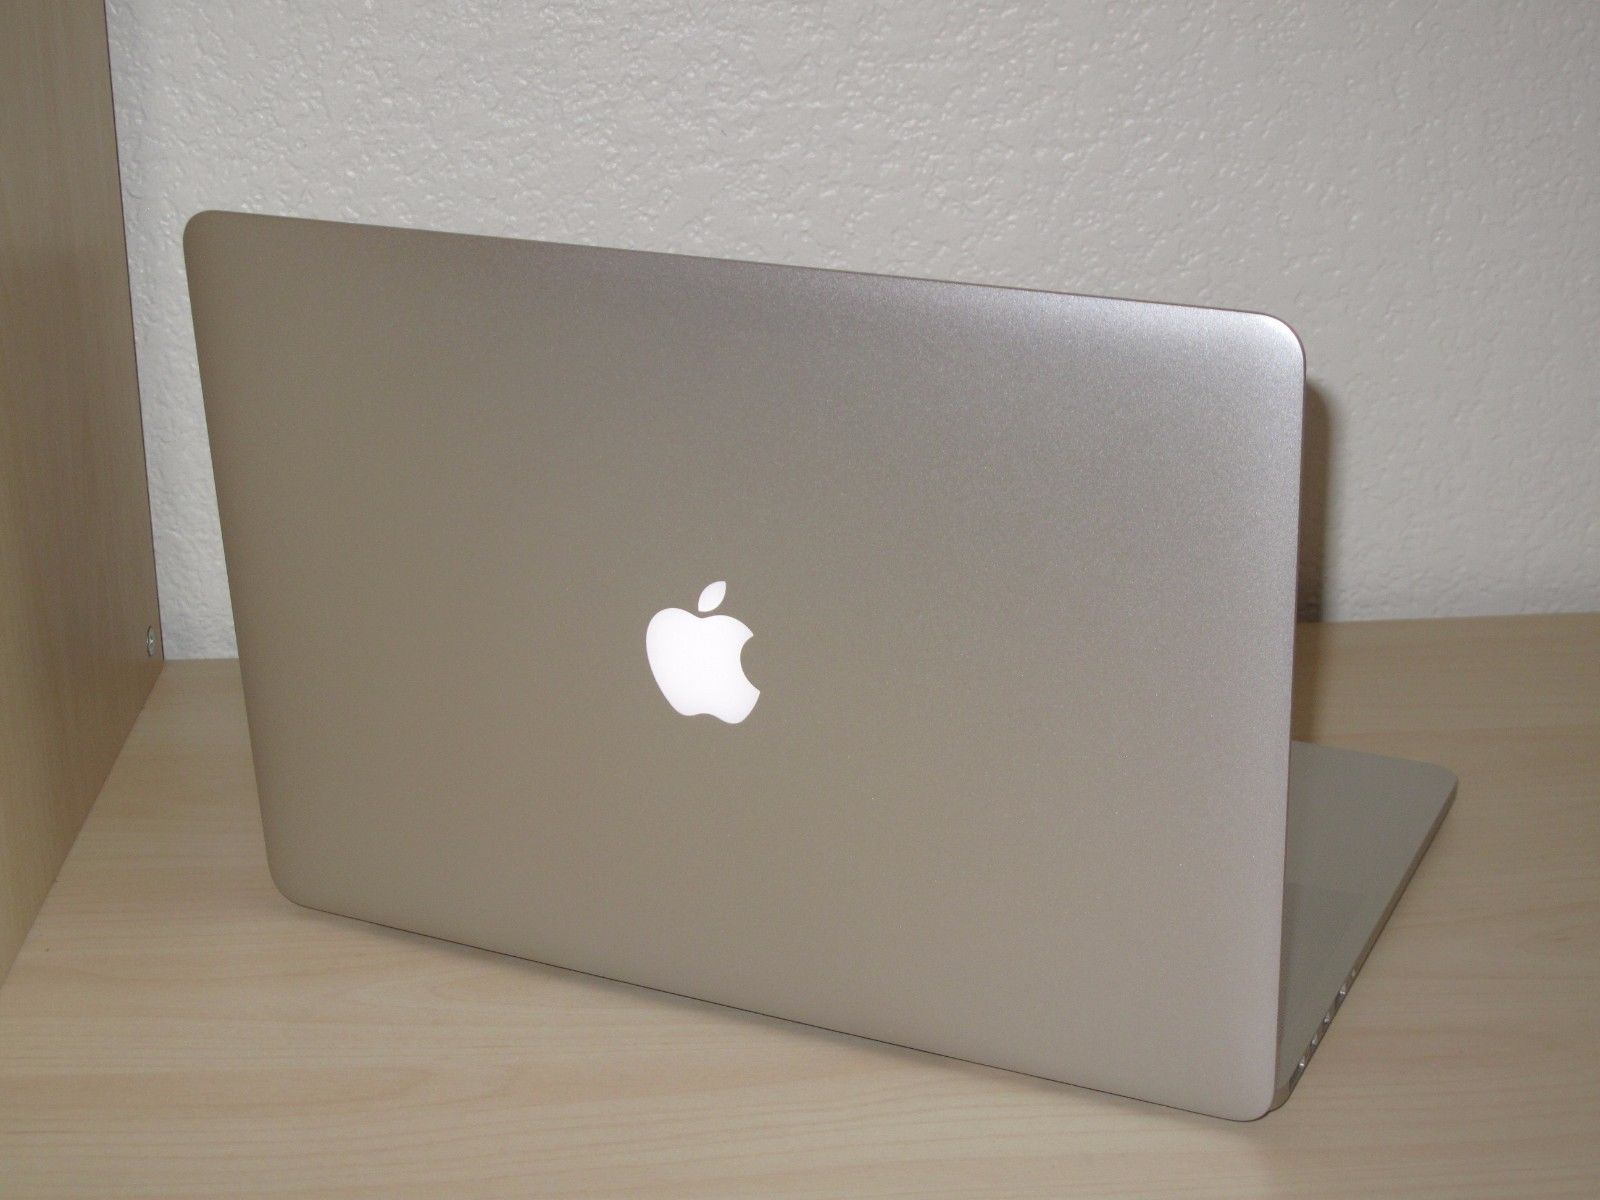 MACBOOK Retina Early 2013 - ME665LL-A1398 - 2673